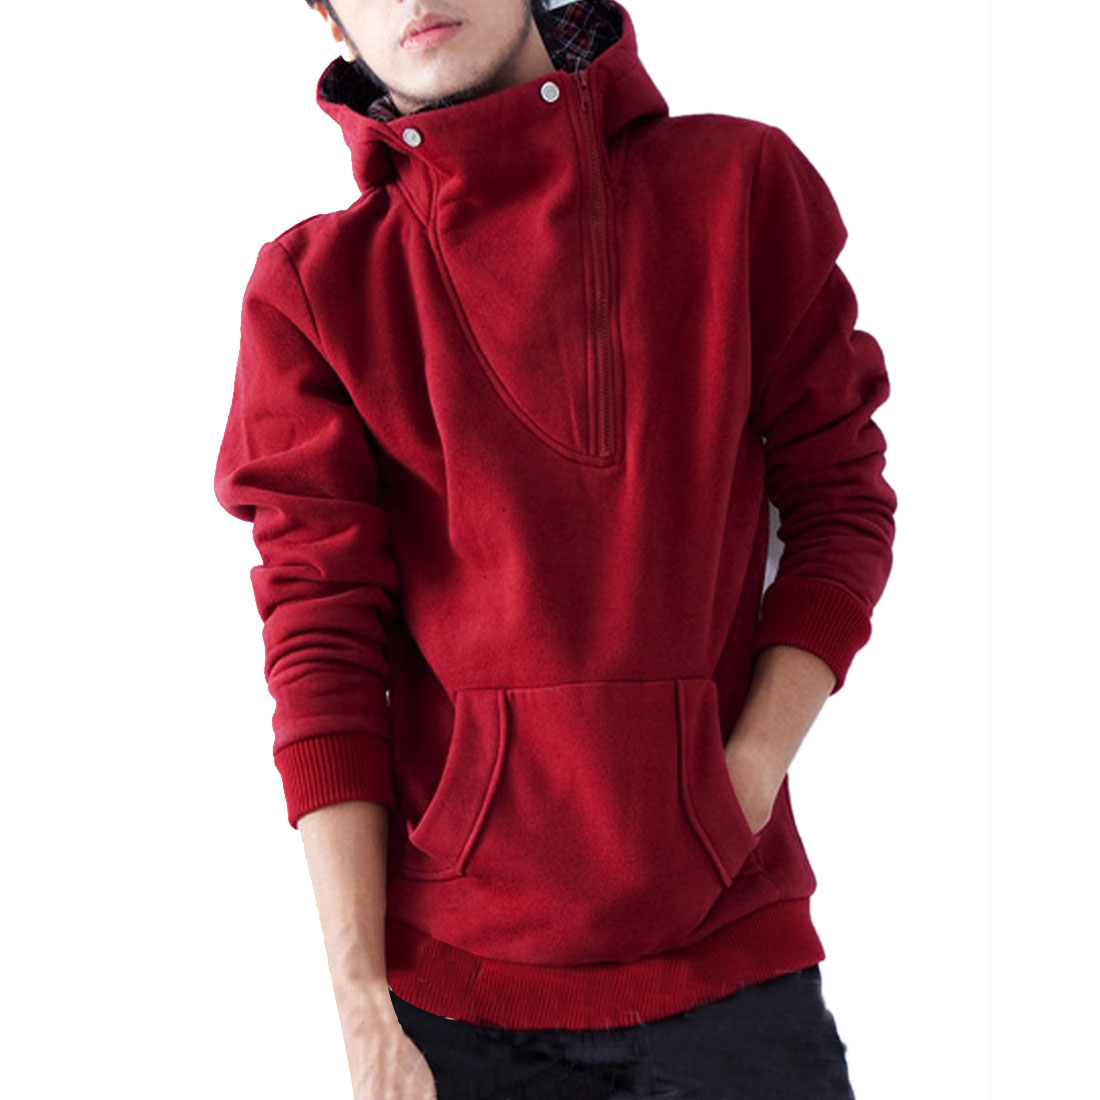 Men's Fashionable Plaids Convertible Collar Warm Red Hoodie M